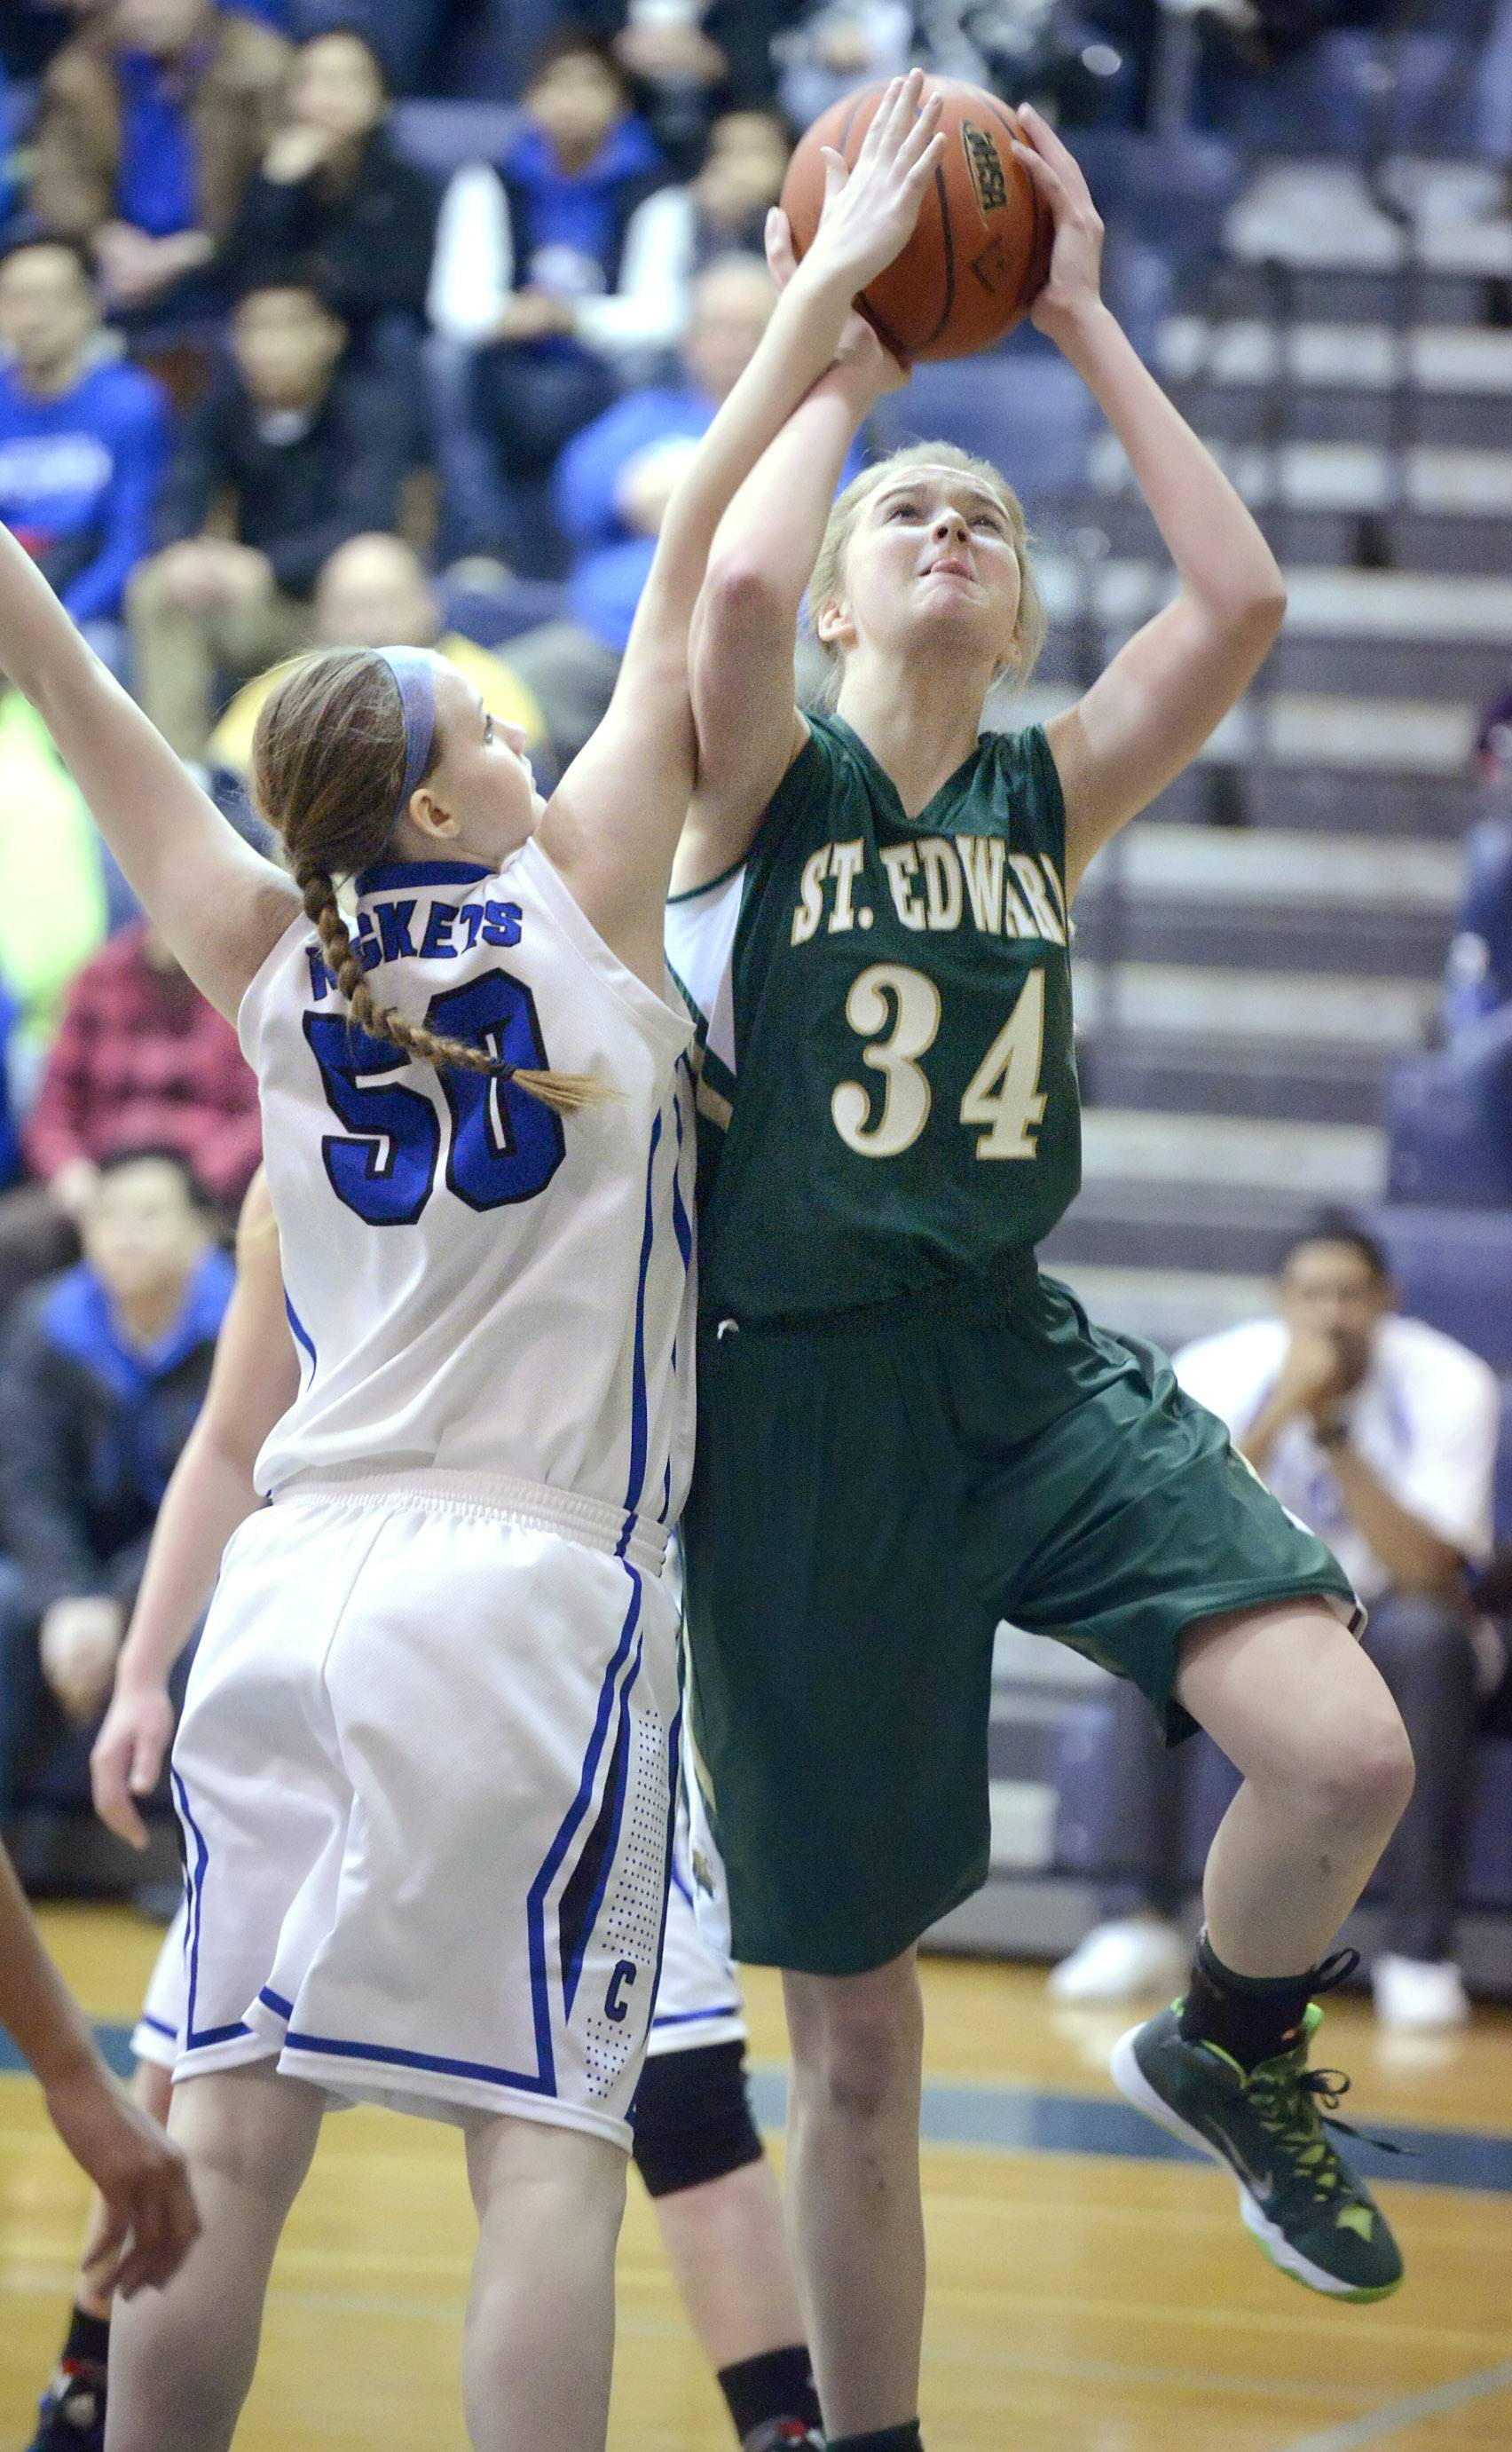 Burlington Central's Rebecca Gerke attempts to block a shot by St. Edward's Cece Rapp in the first quarter of the Class 3A regional championship game on Saturday in Aurora.